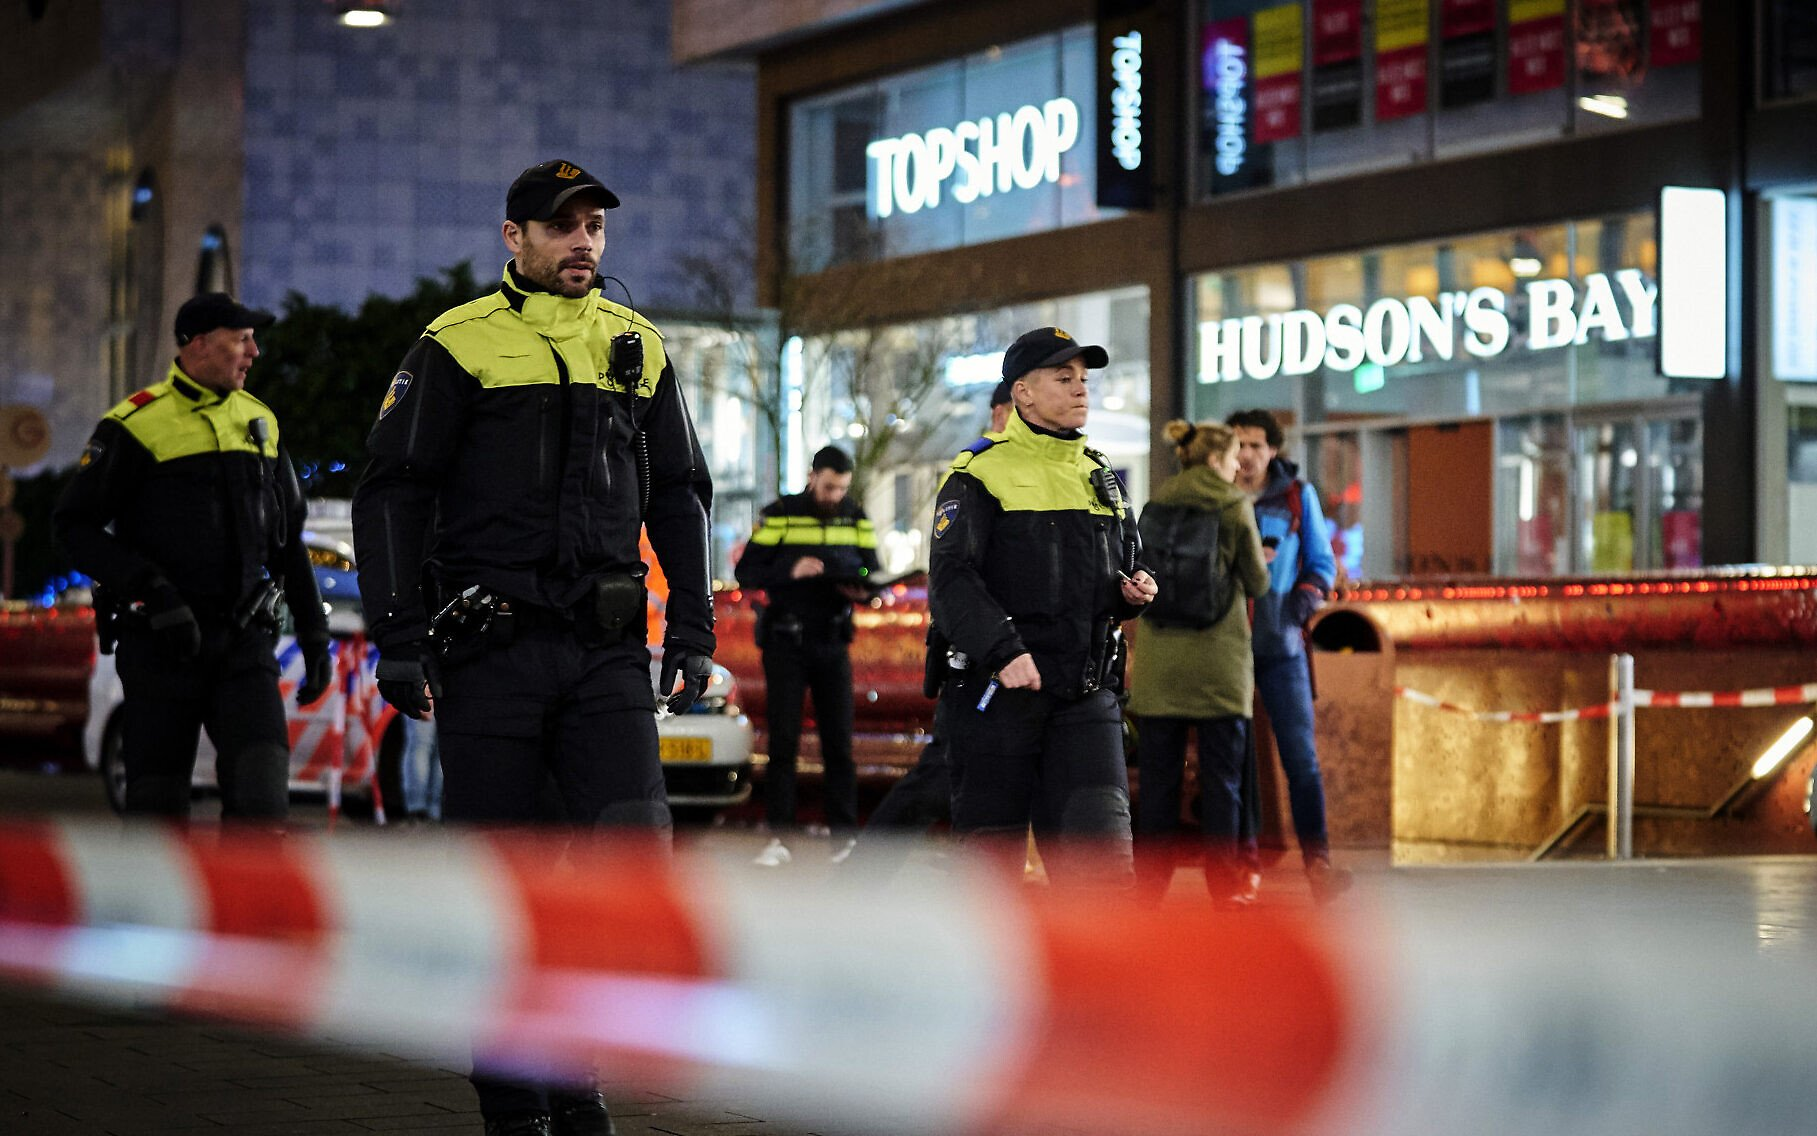 Police rule out terrorism as a motive for Friday's attack in The Hague